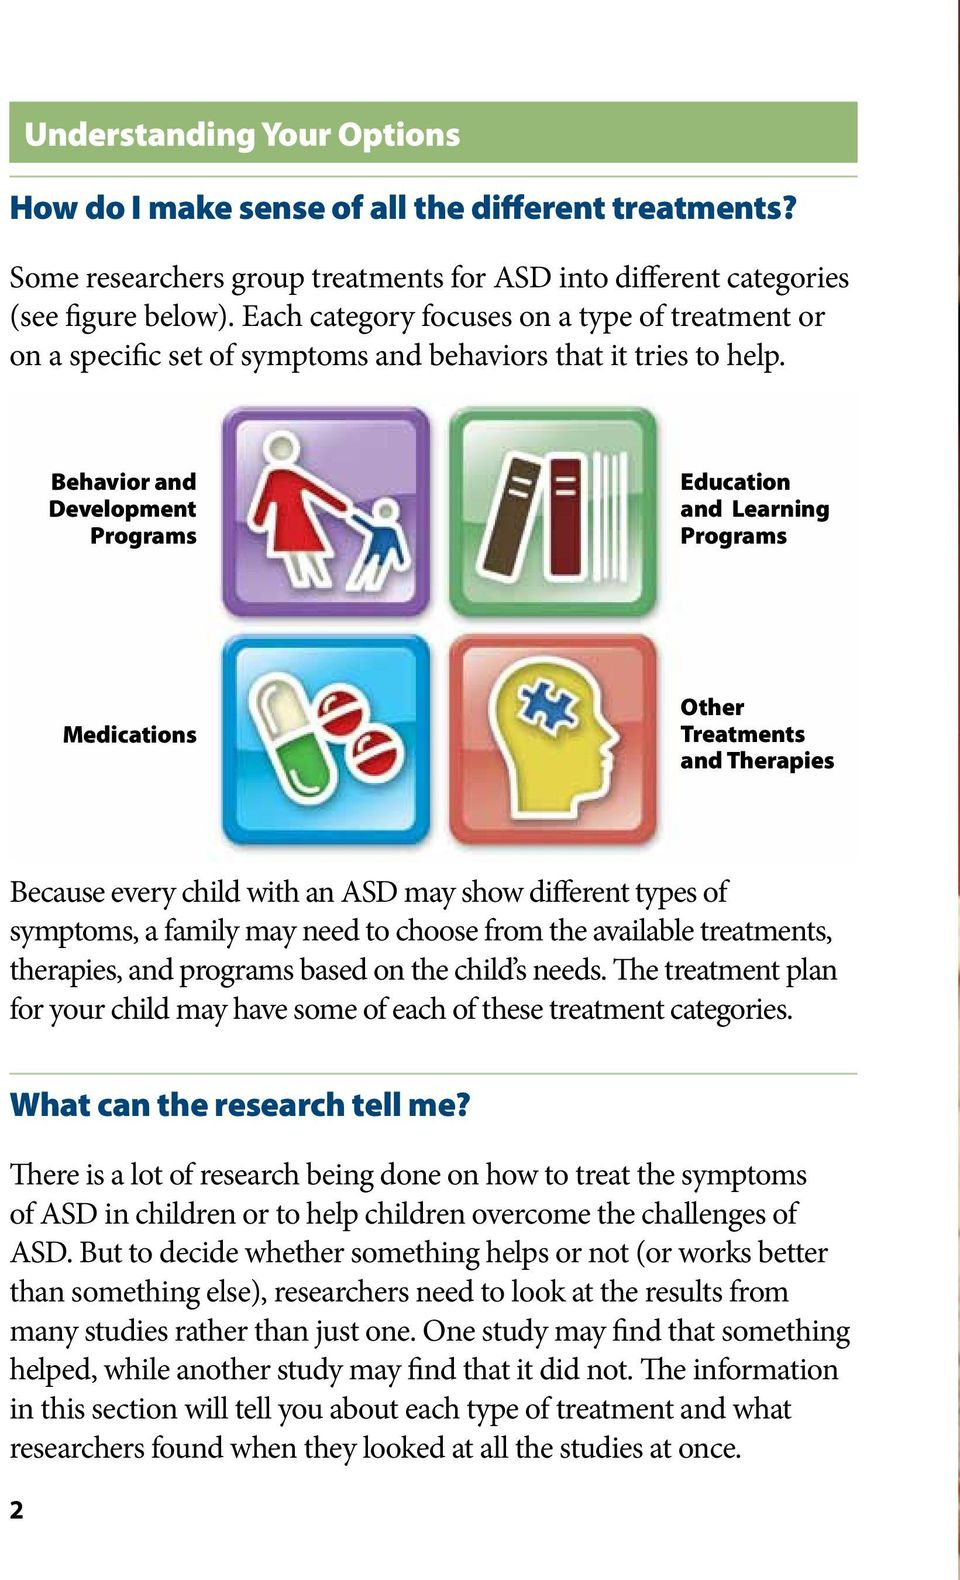 Behavior and Development Programs Education and Learning Programs Medications Other Treatments and Therapies Because every child with an ASD may show different types of symptoms, a family may need to